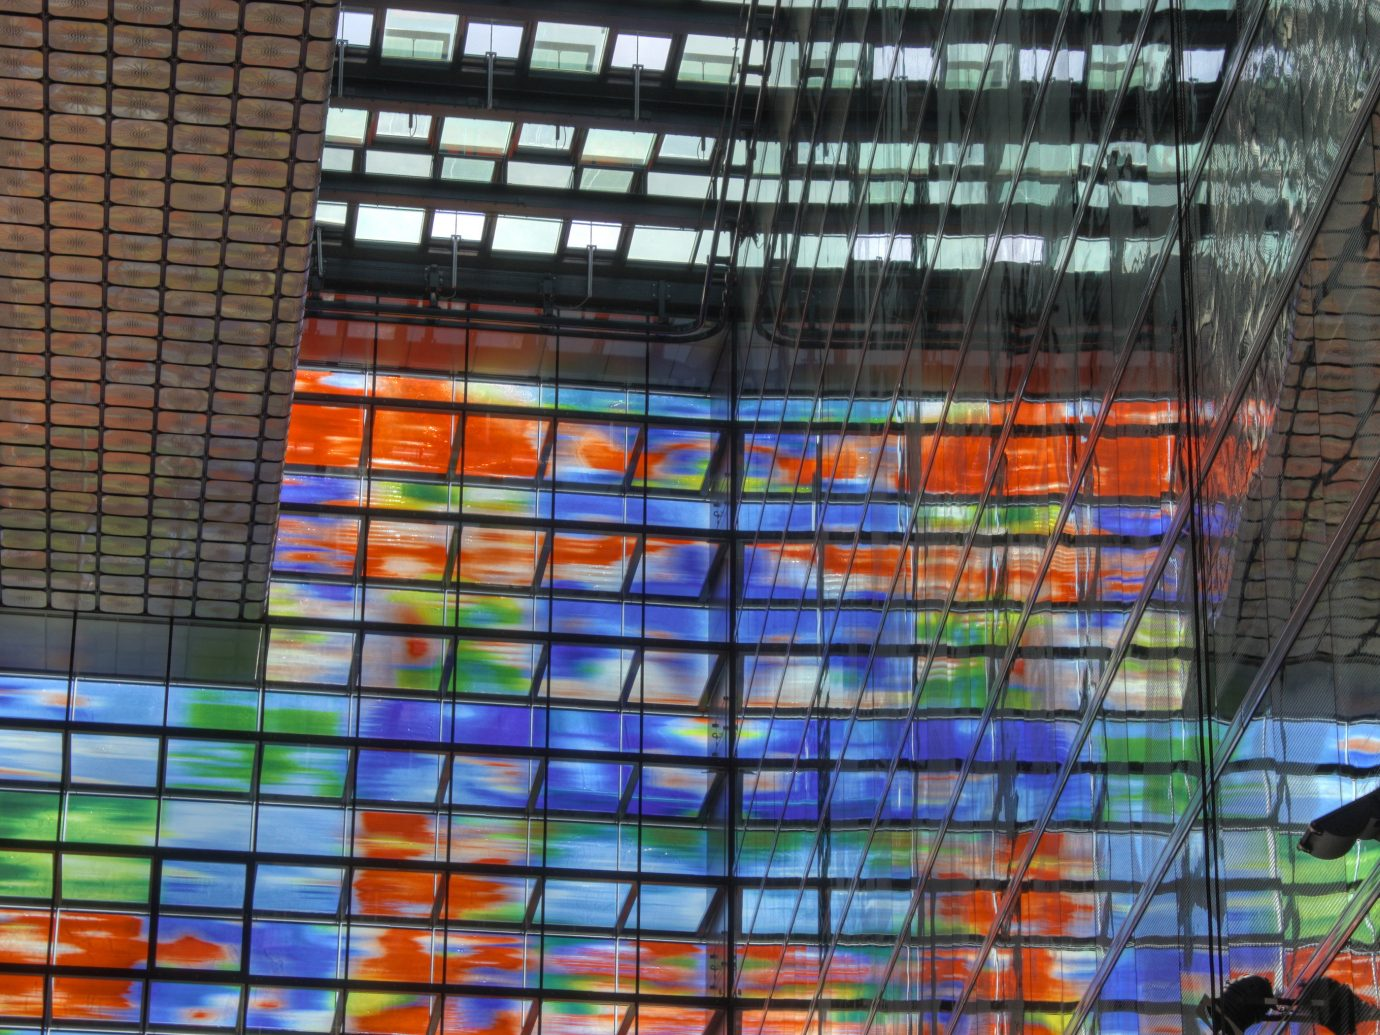 Offbeat building color window urban area glass wall stained glass art Design material cage net tiled